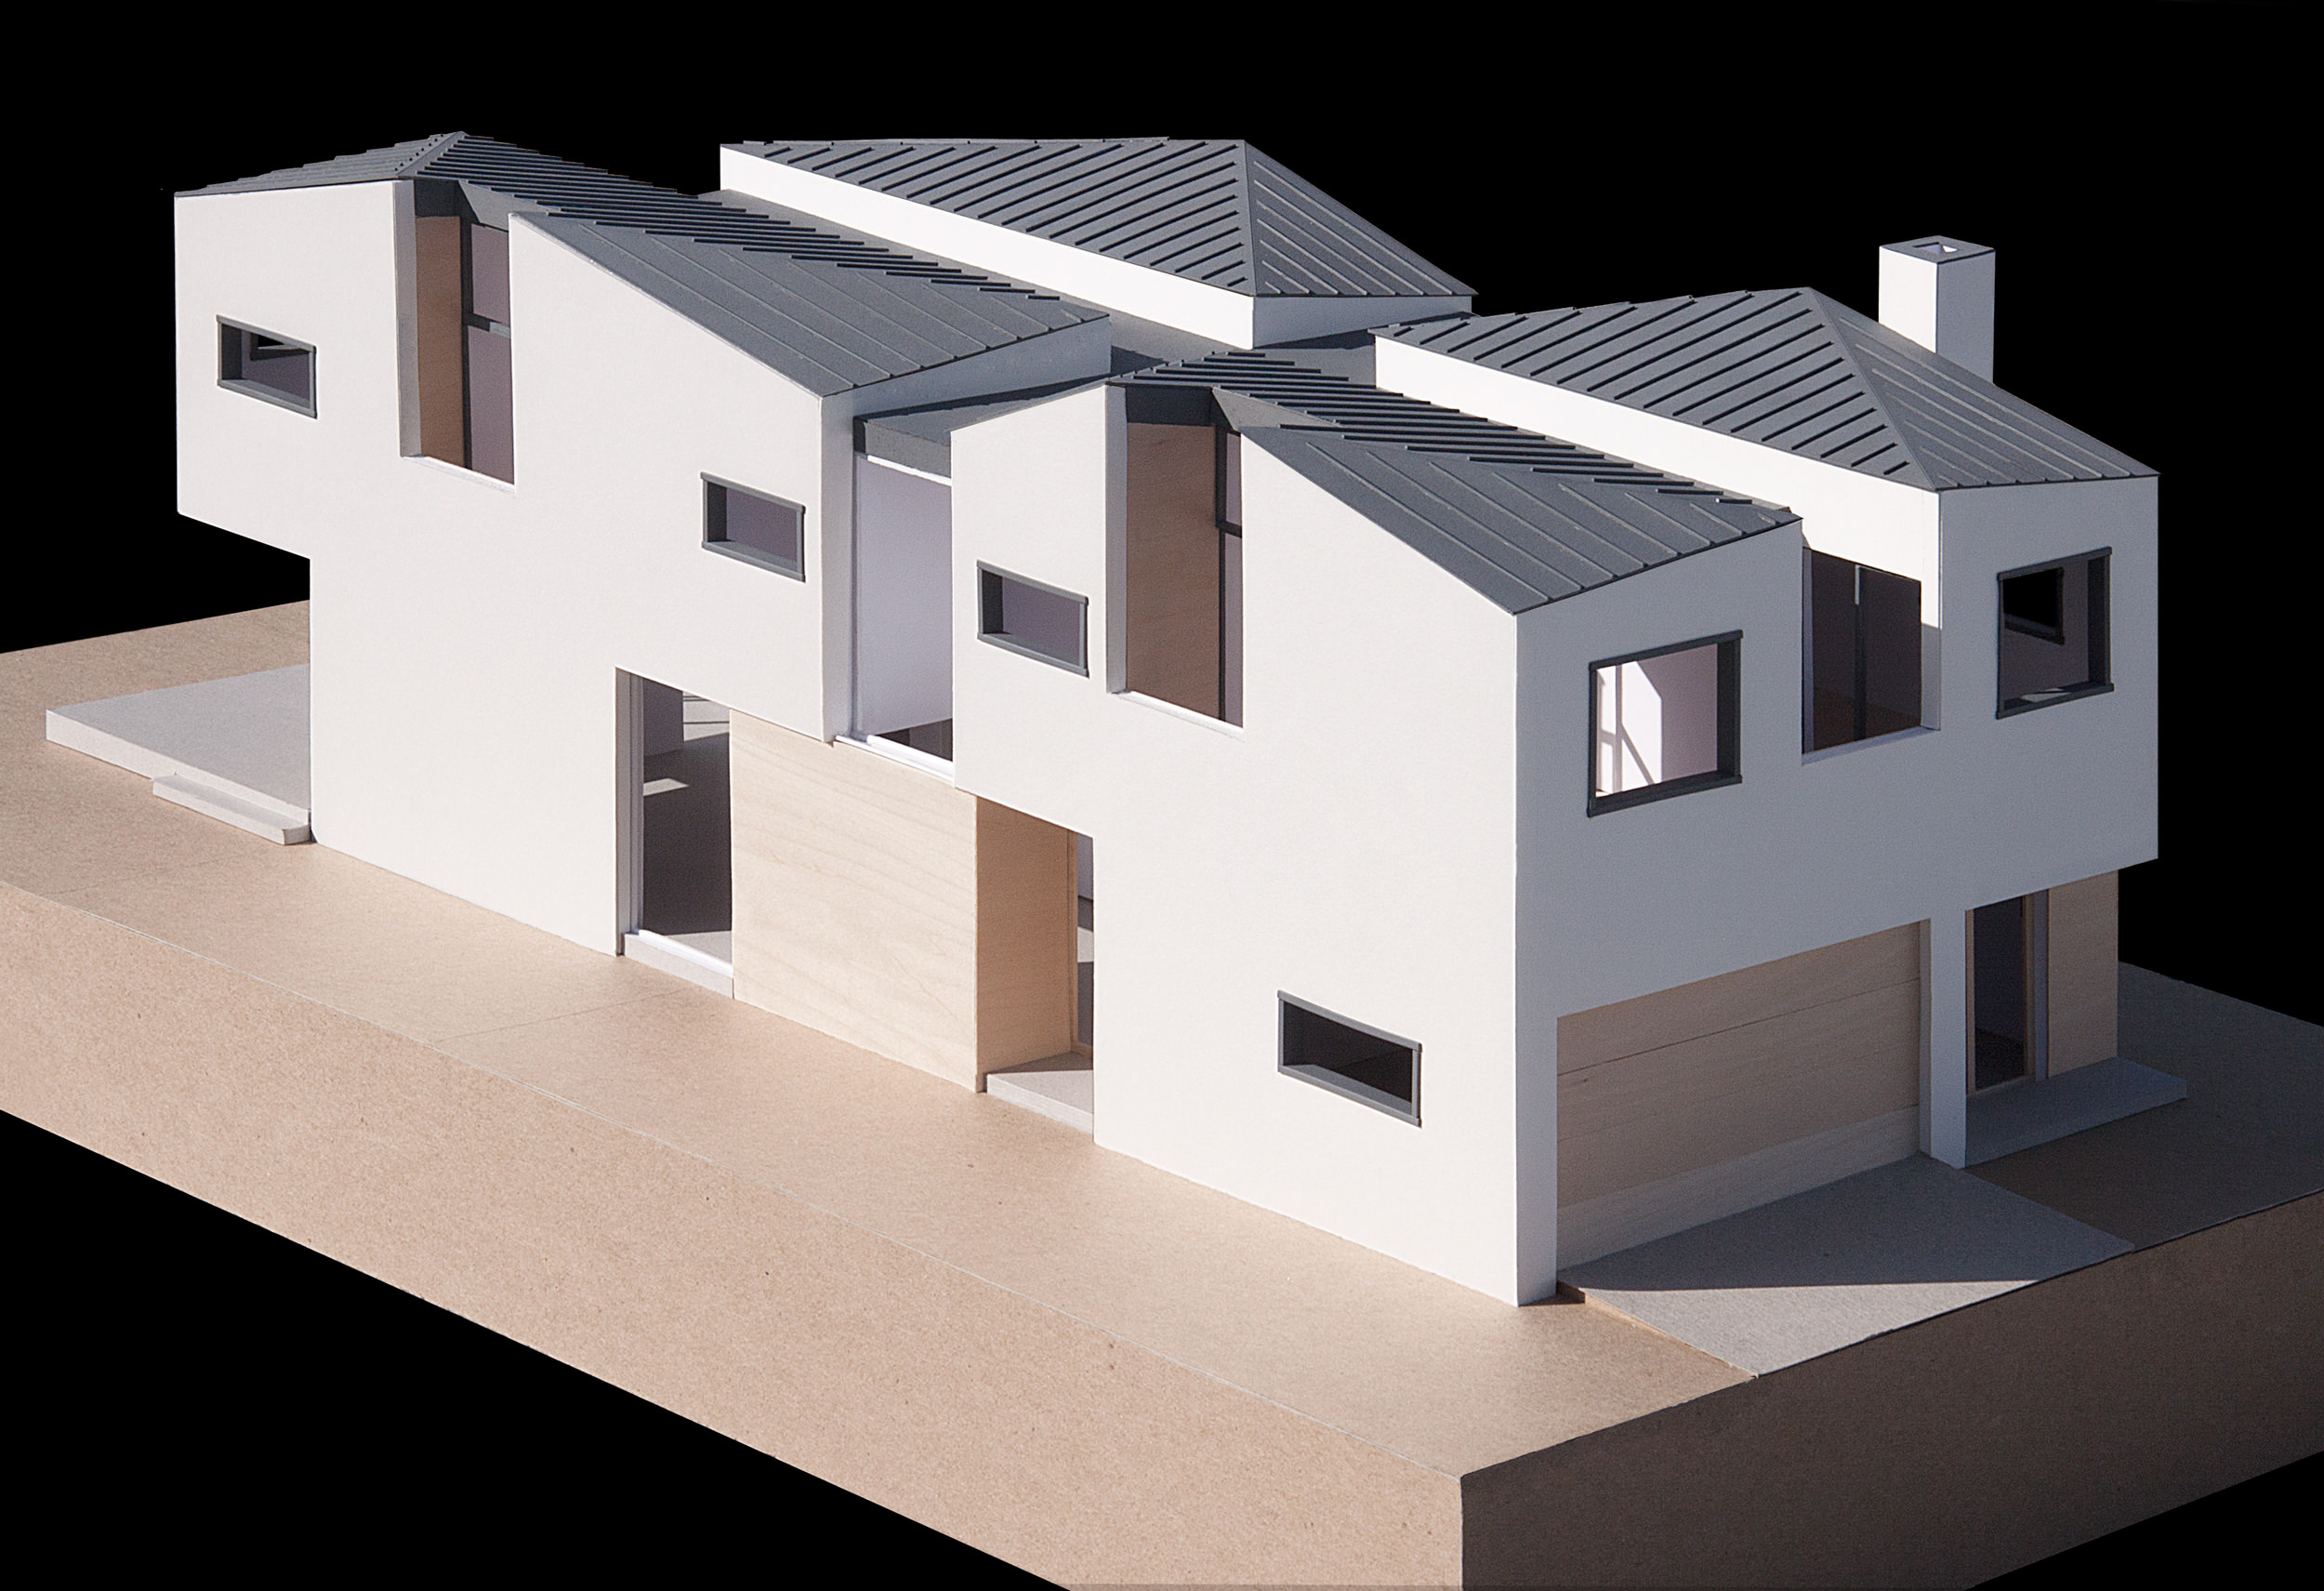 Aerial view showing the flat roof that divides the house into four quadrants - each with uniquely vaulted ceiling.